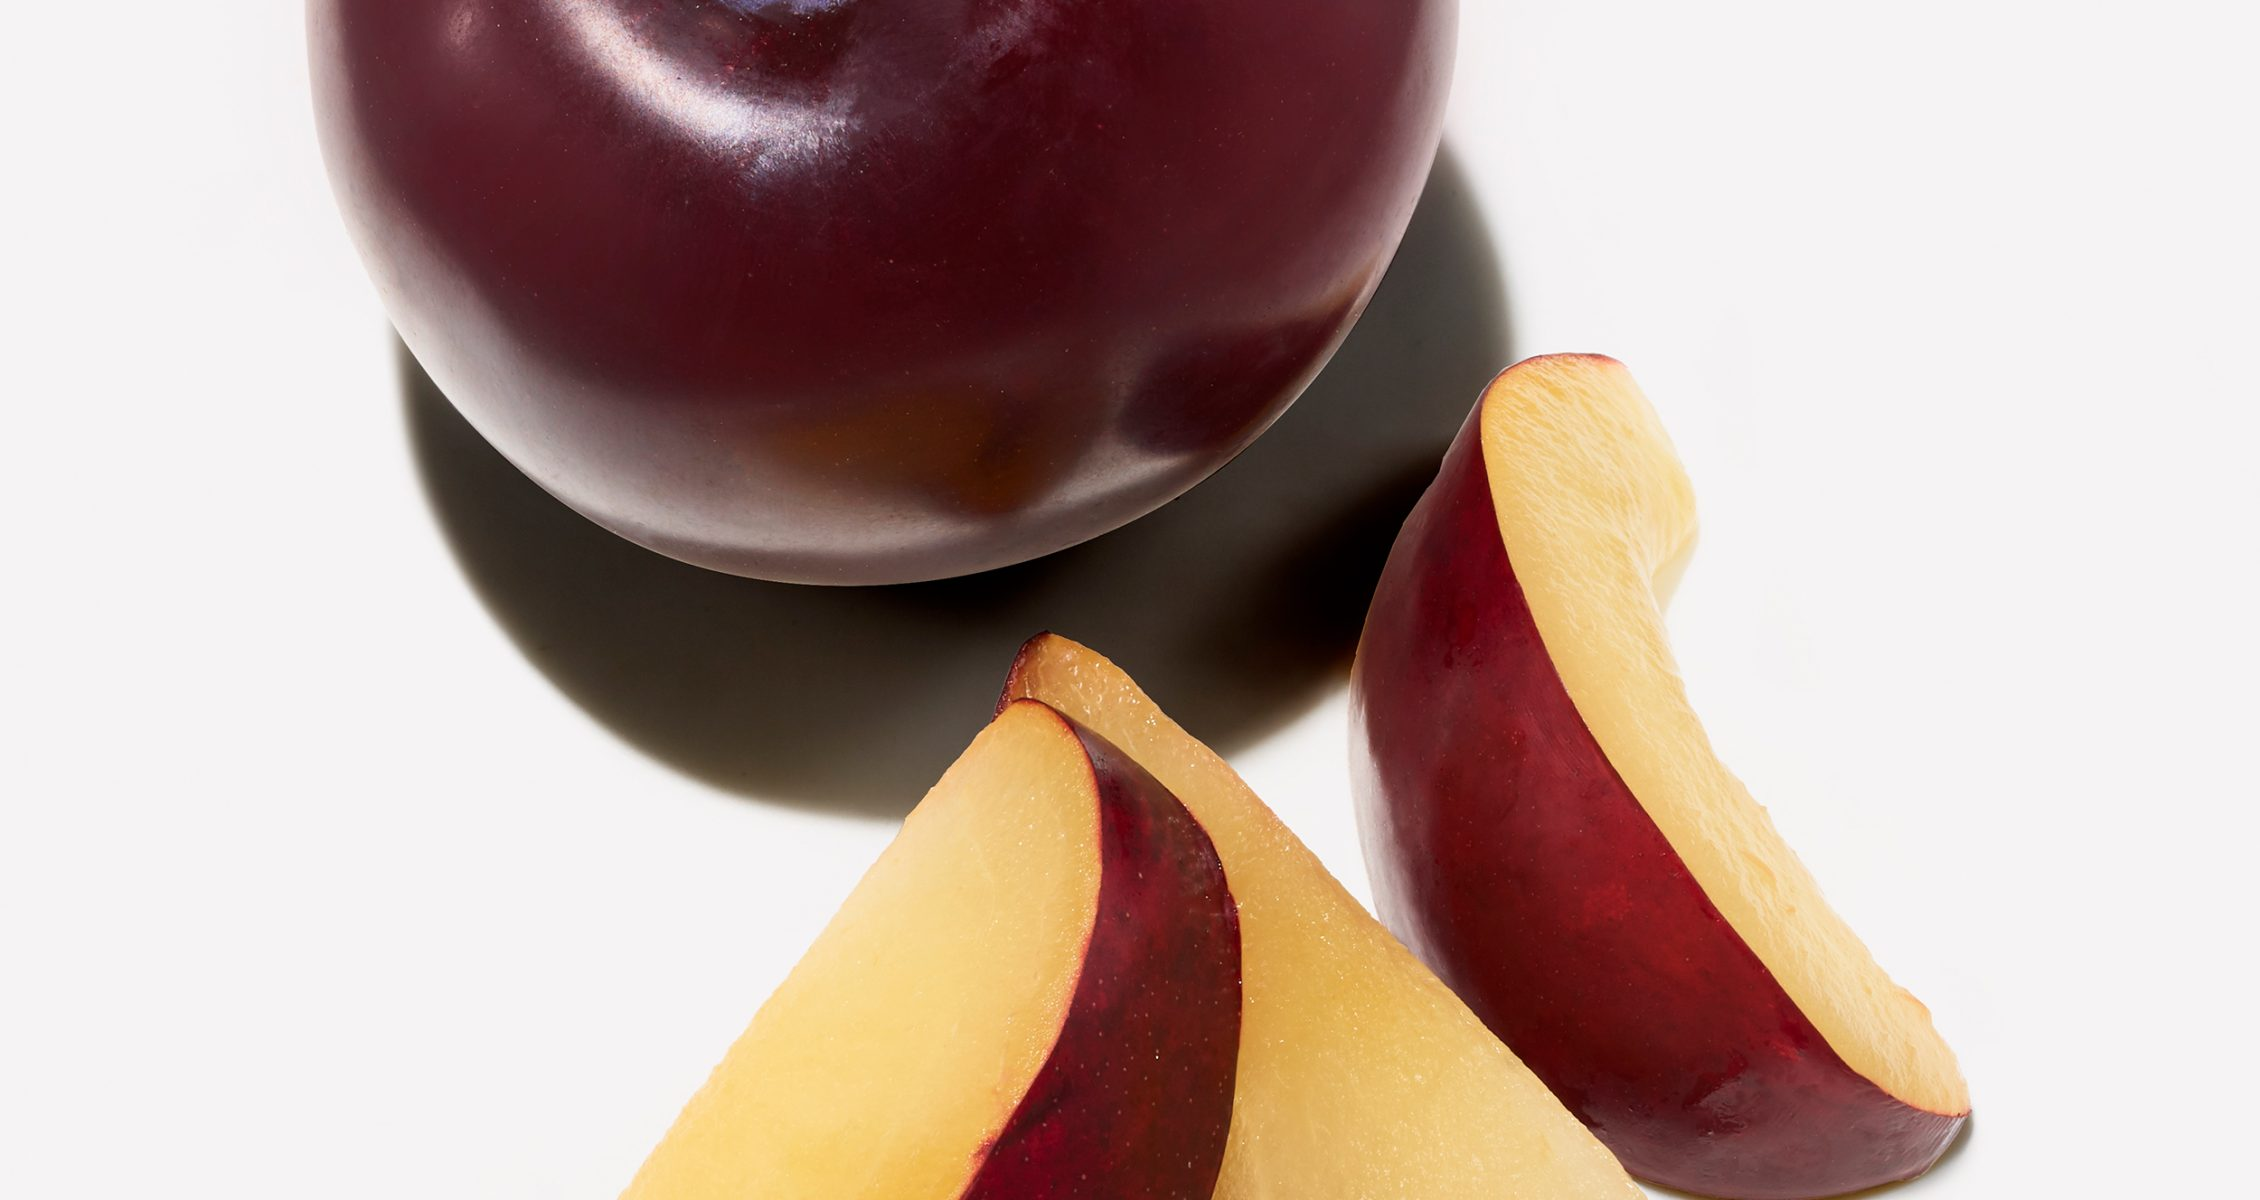 Sliced and whole plums